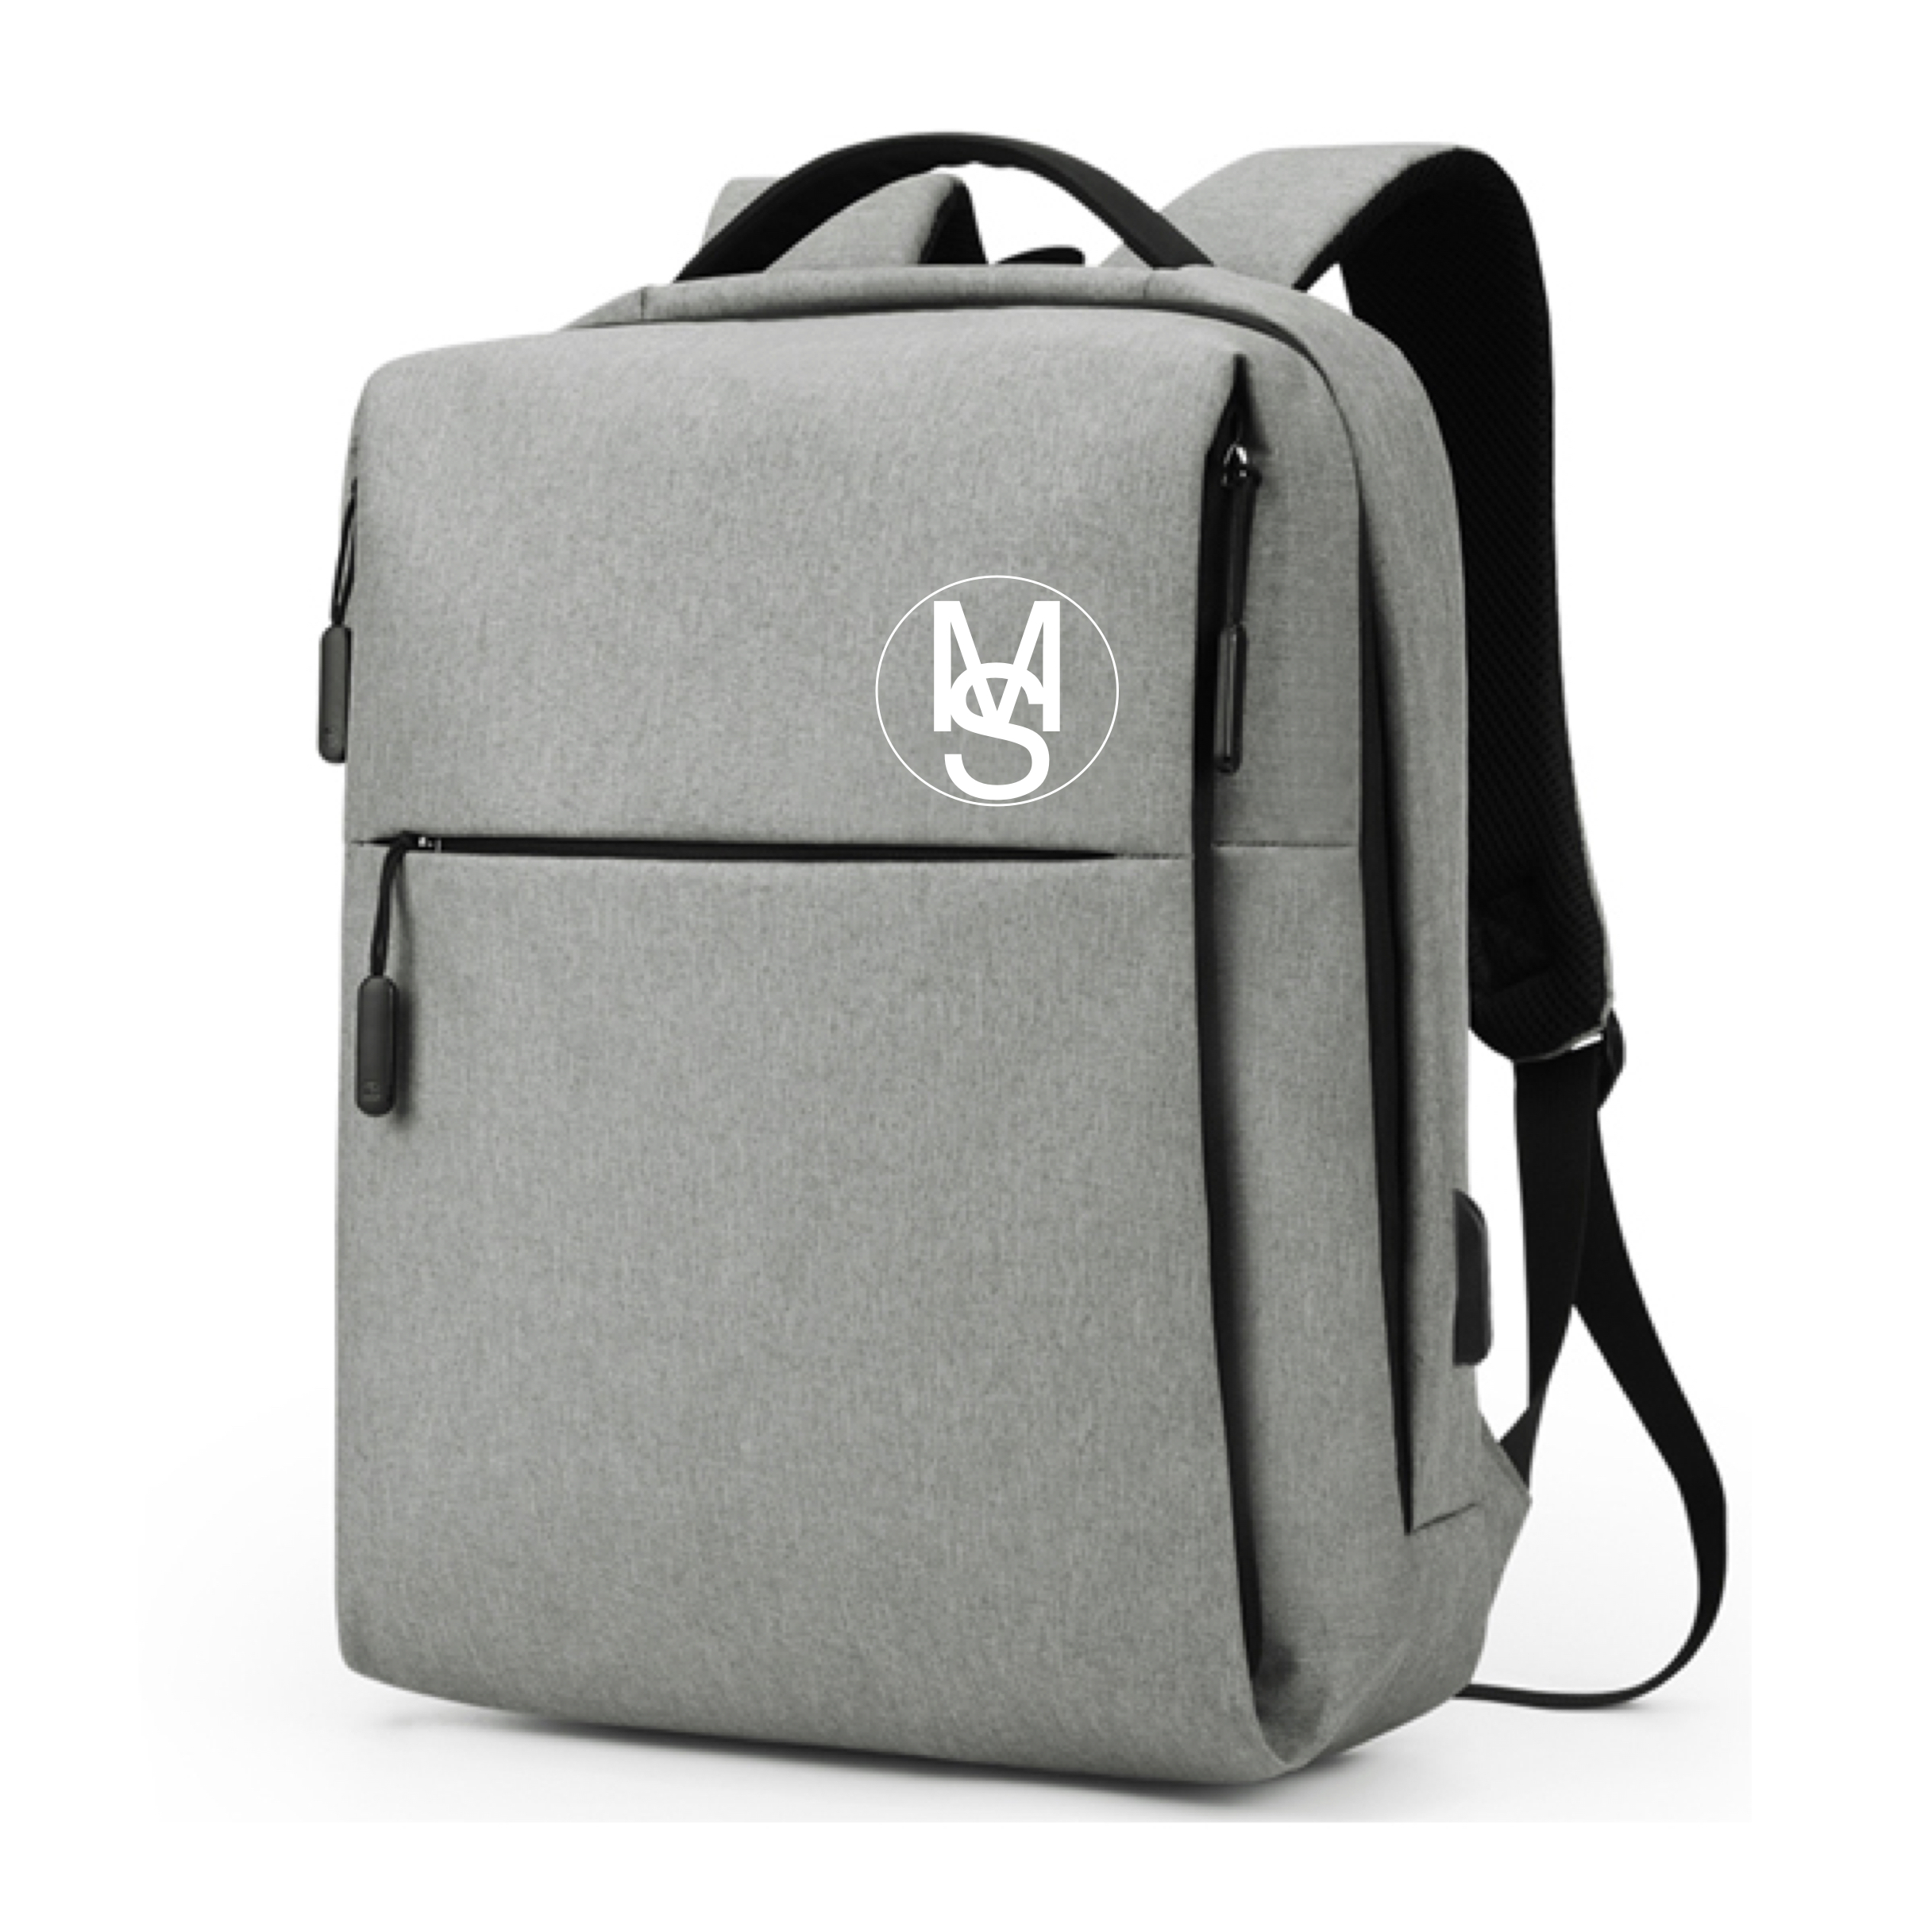 Multifunctional Anti-Theft Backpack - Light Grey Image